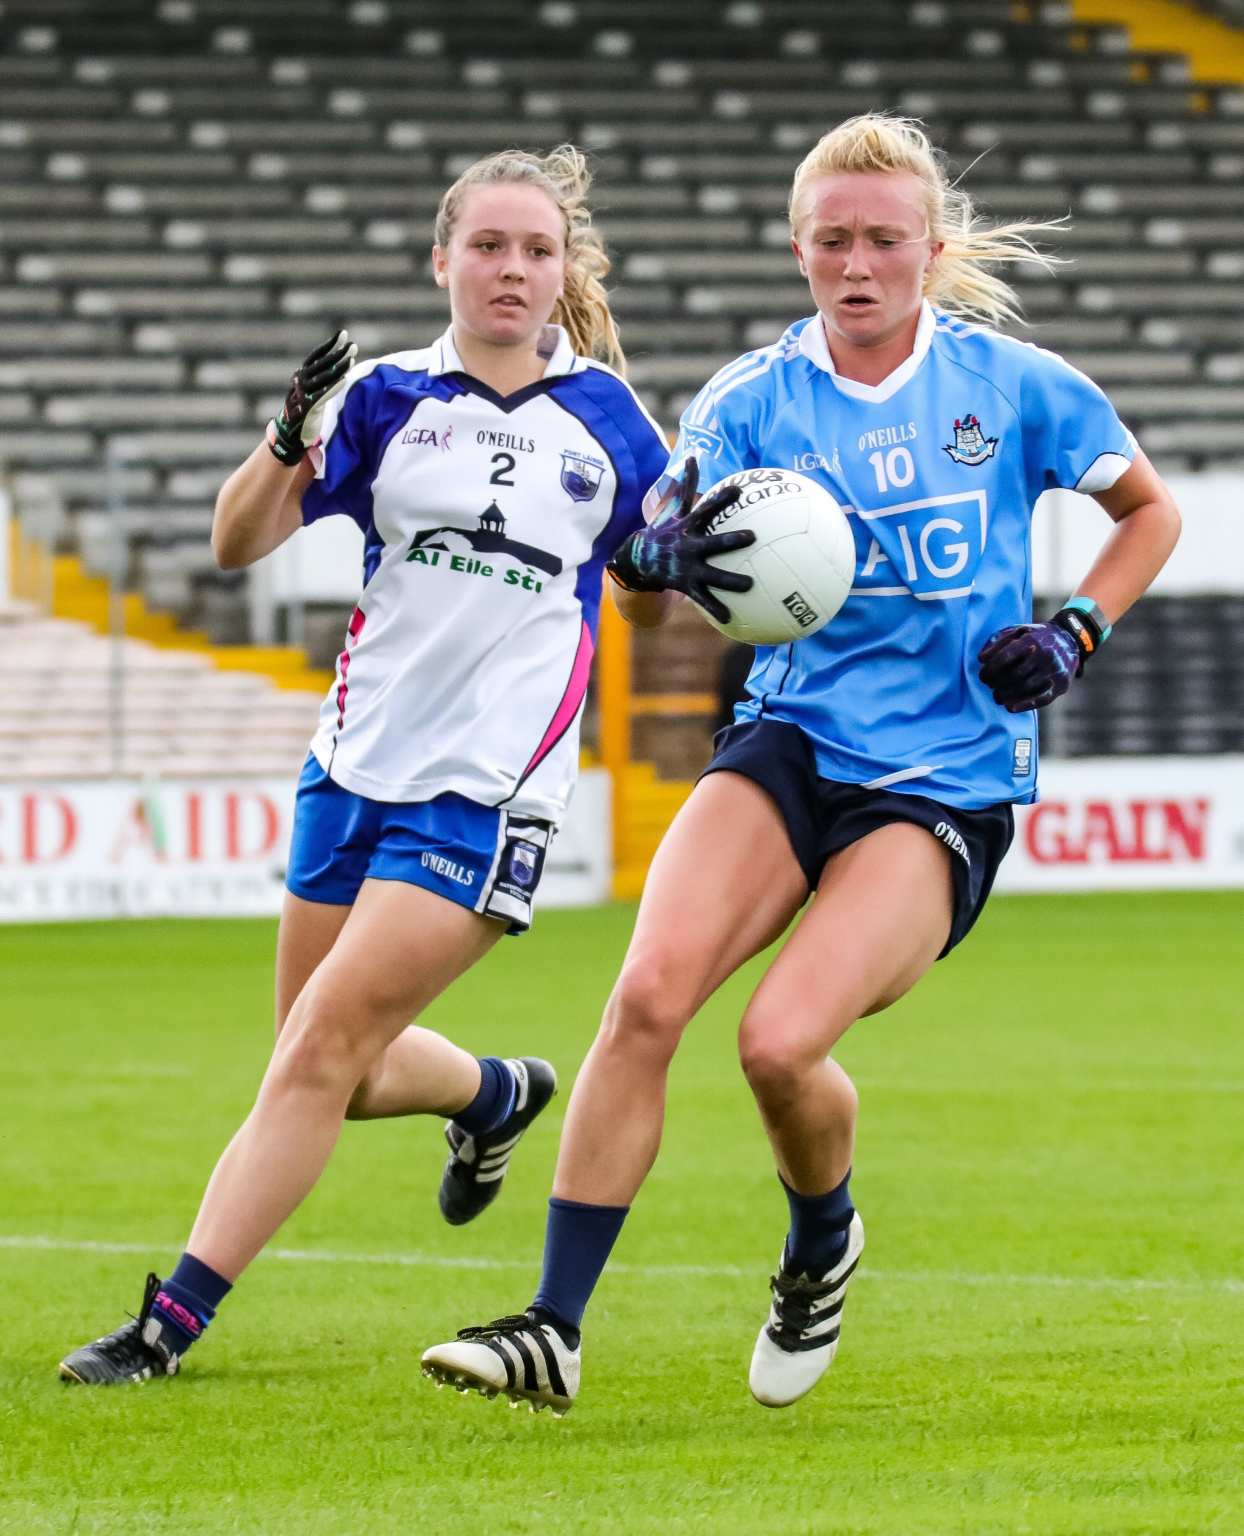 A Dublin Ladies footballer and Waterford player in action during a game both sides meet this weekend in the TG4 Senior All Ireland championship